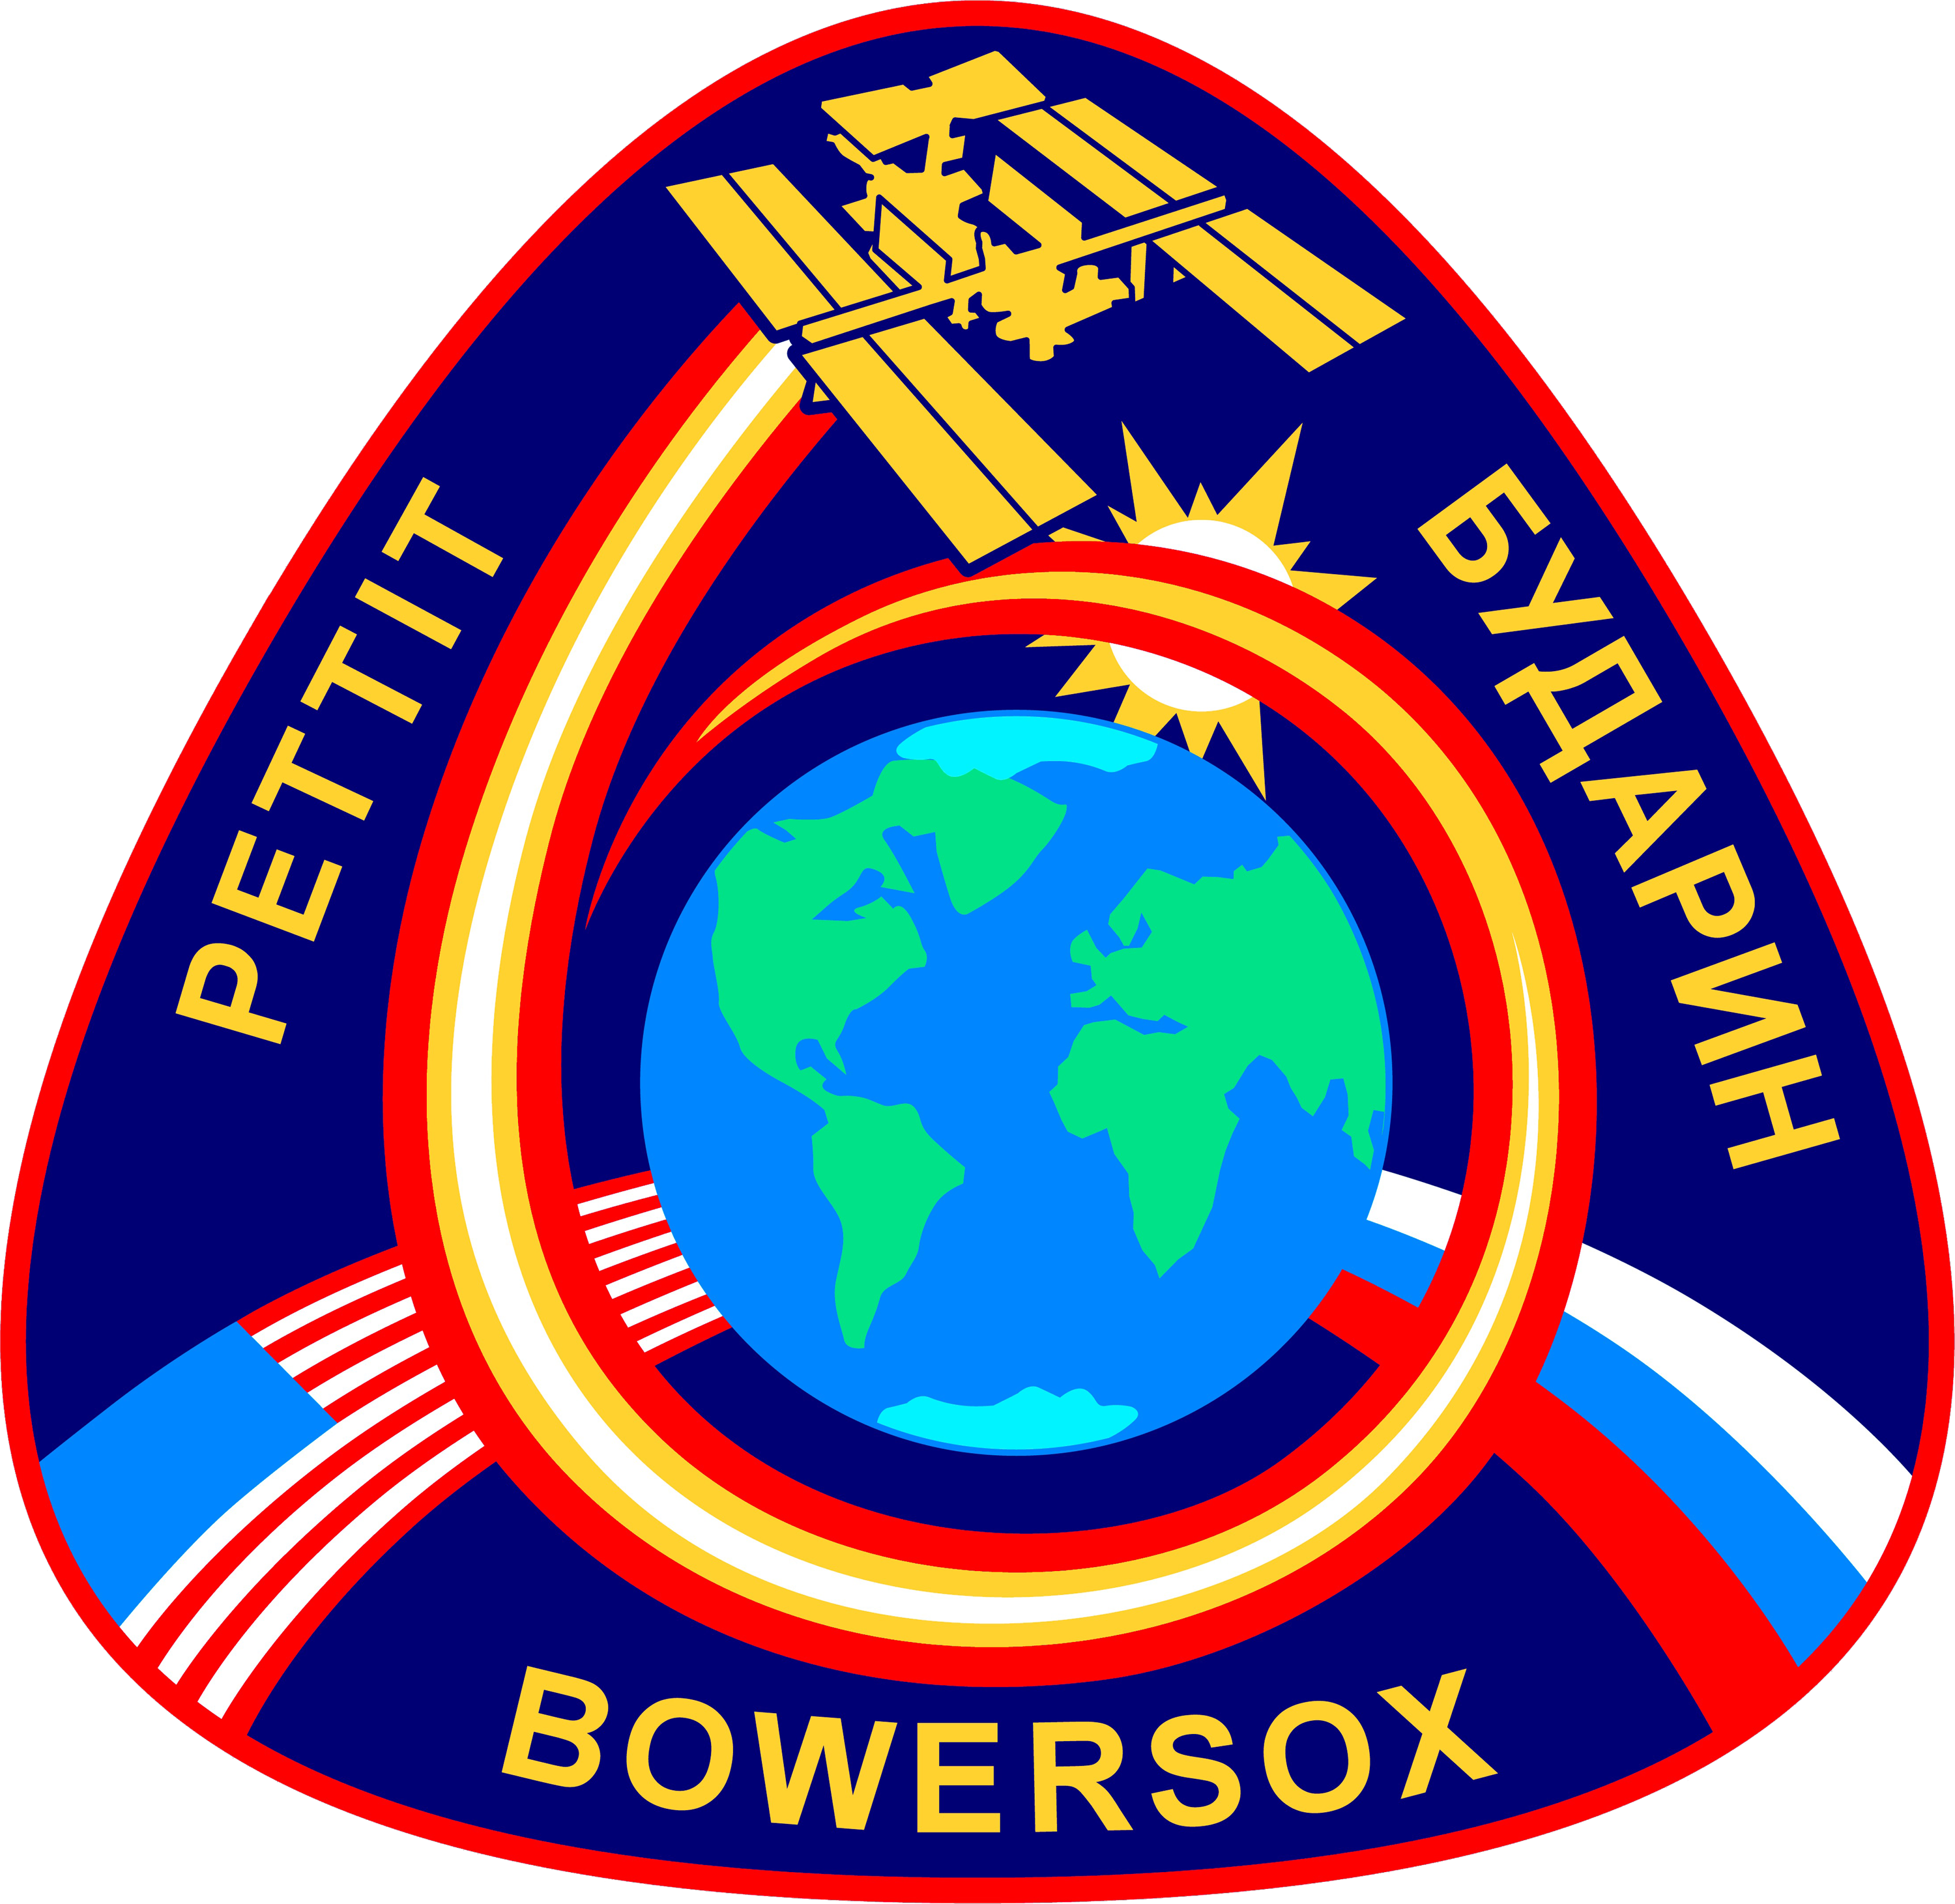 File:Expedition 6 insignia (iss patch).png.